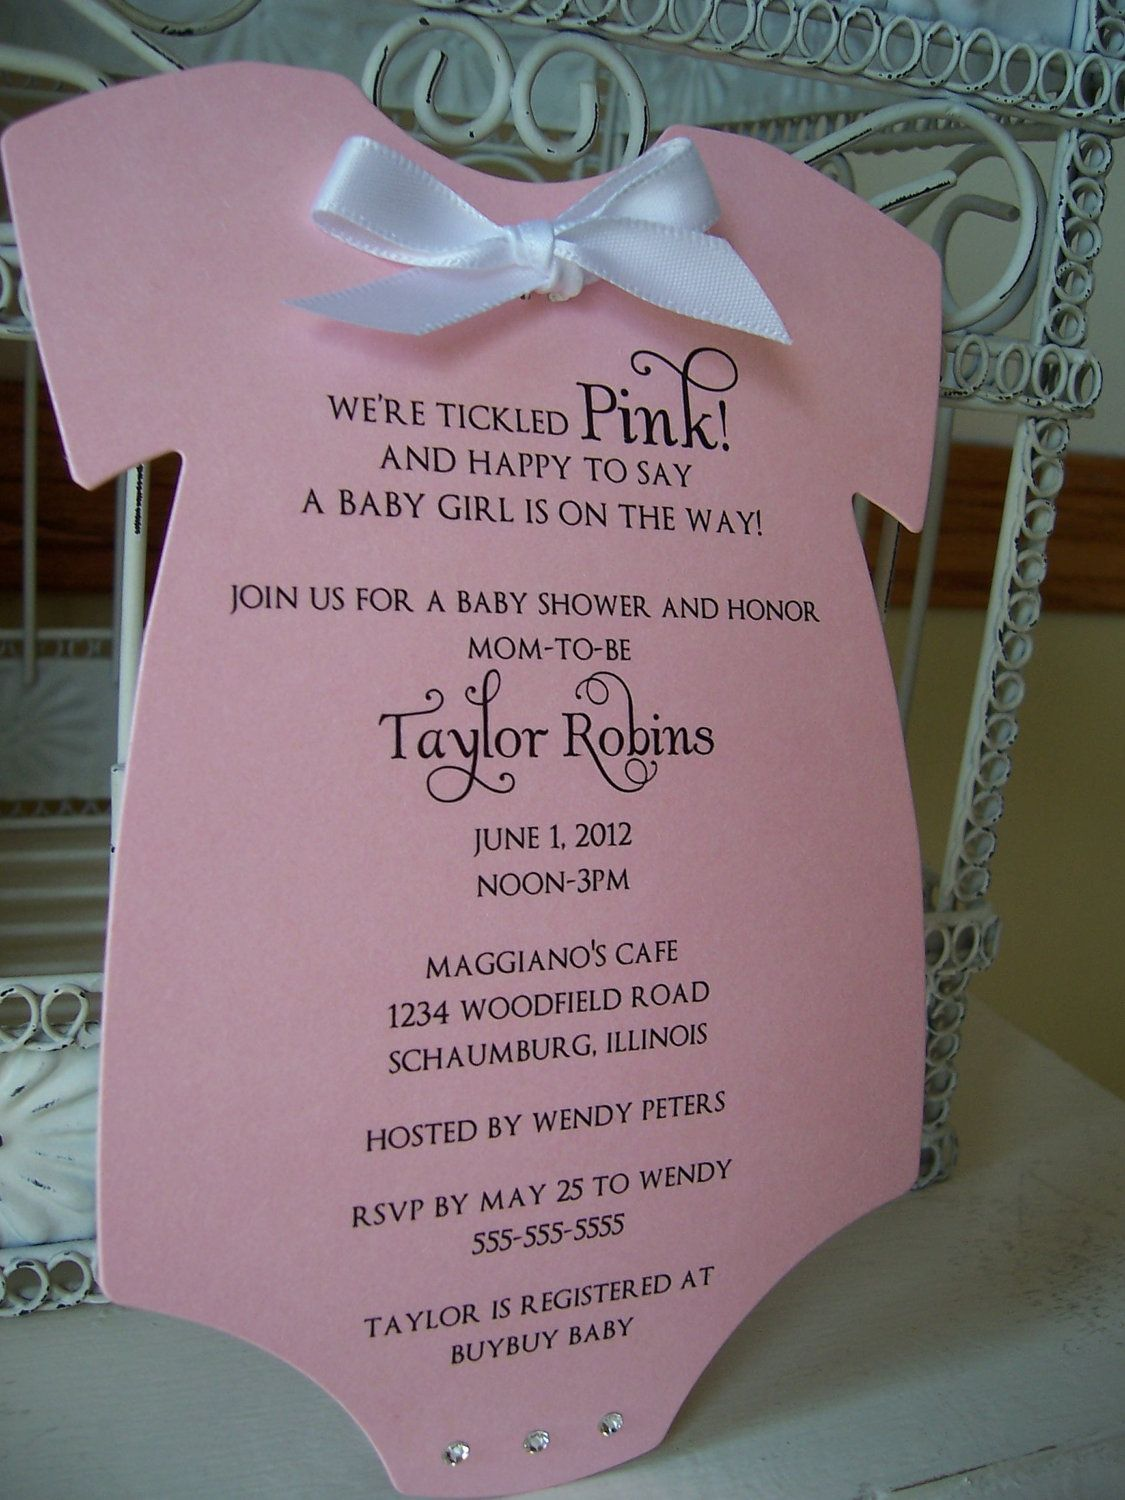 Think Pink Baby Shower Invitation - Custom Die Cut Onesie. $2.20 ...